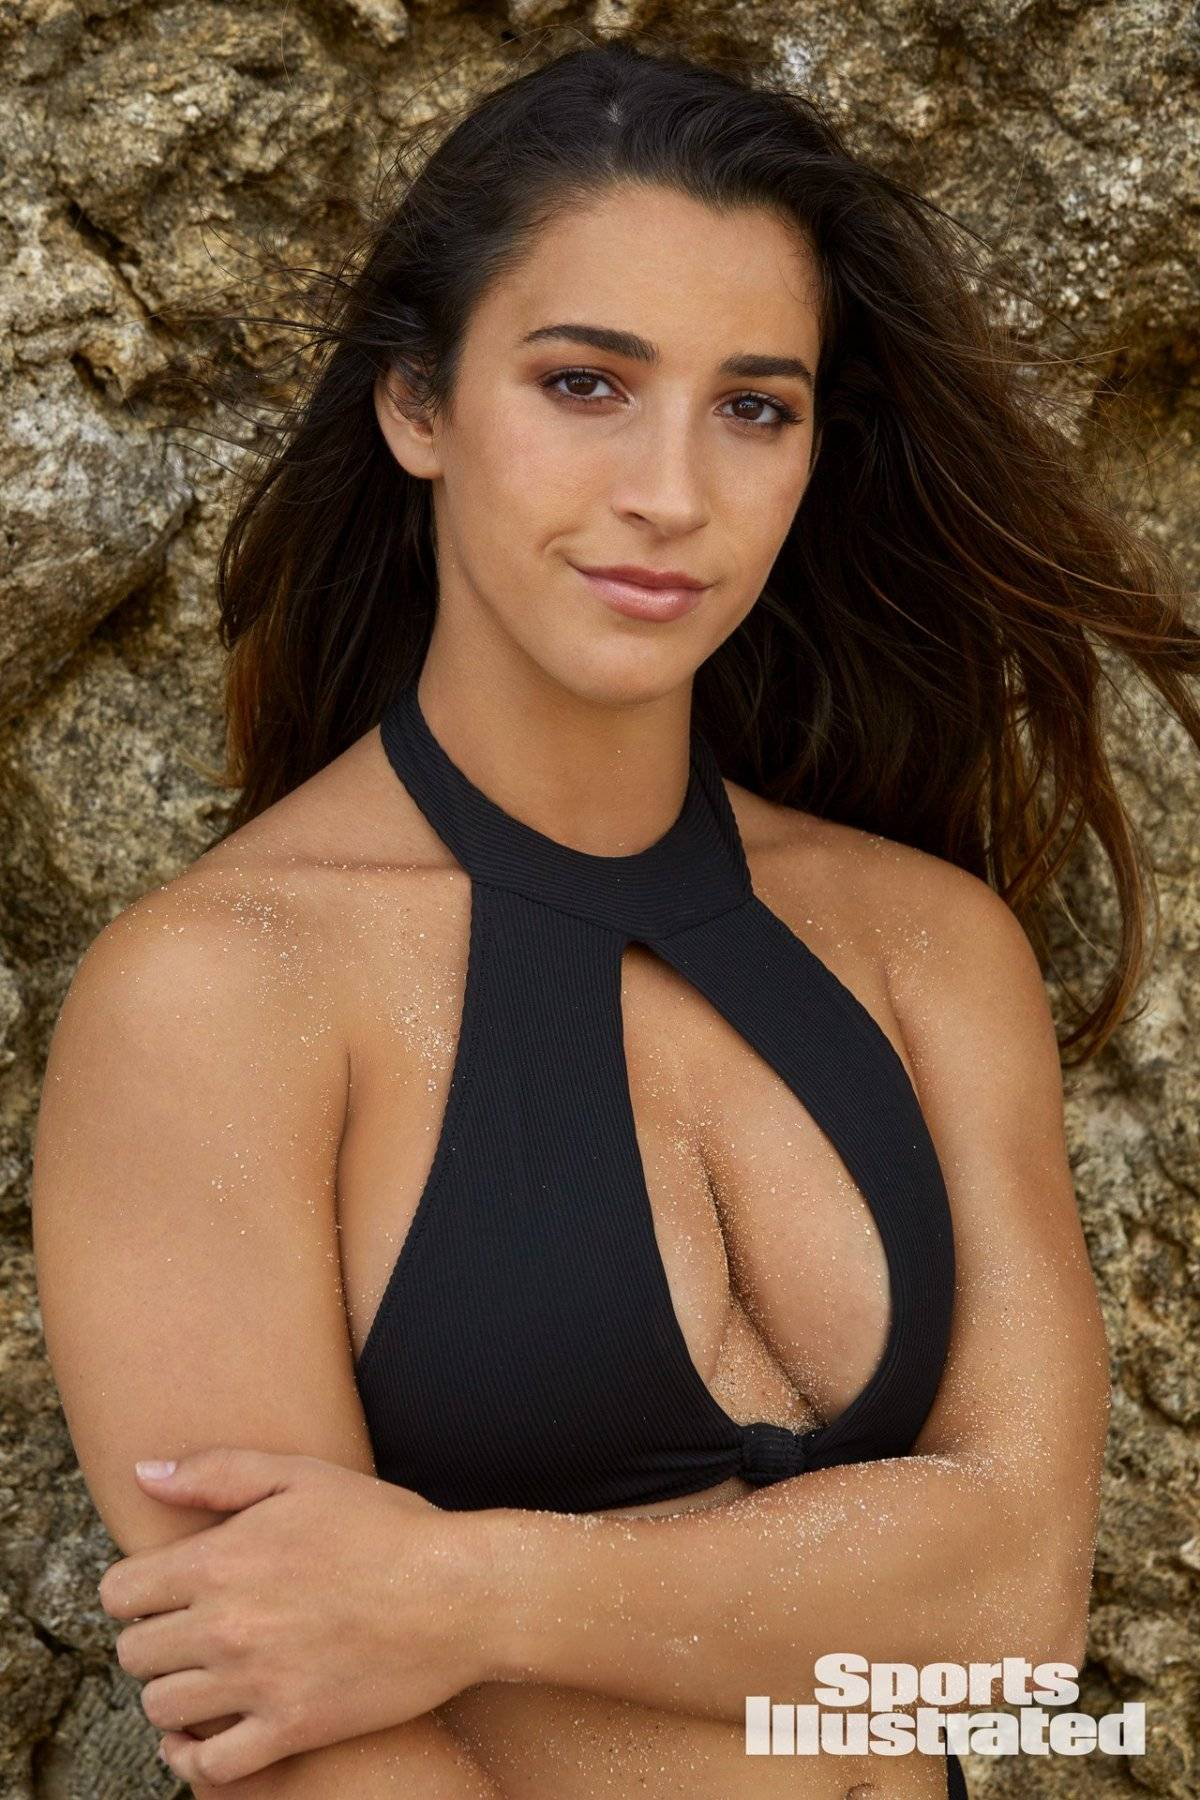 Aly Raisman Sports Illustrated